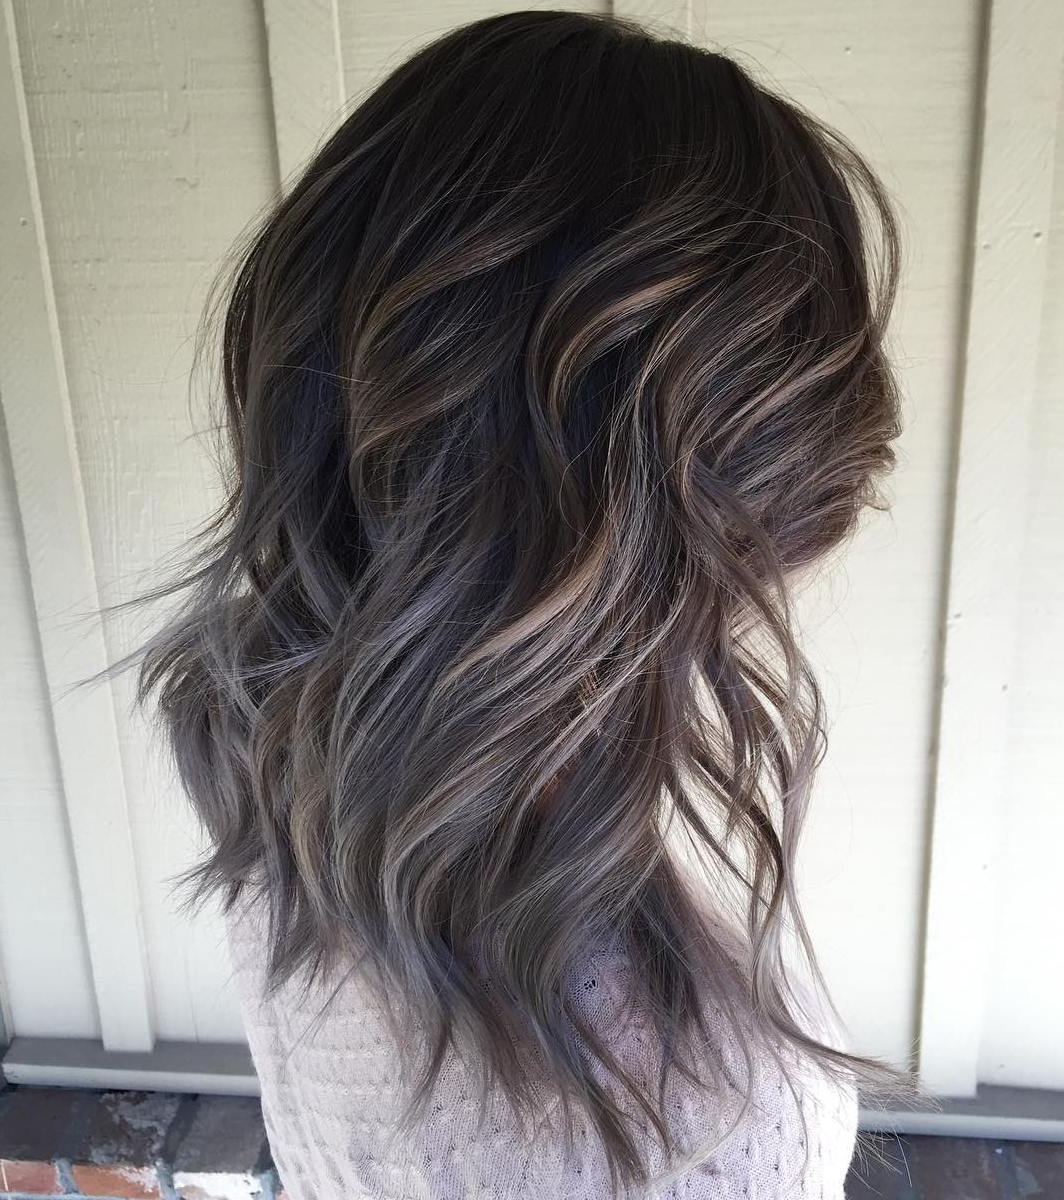 45 Ideas Of Gray And Silver Highlights On Brown Hair Within Silver Balayage Bob Haircuts With Swoopy Layers (View 12 of 20)